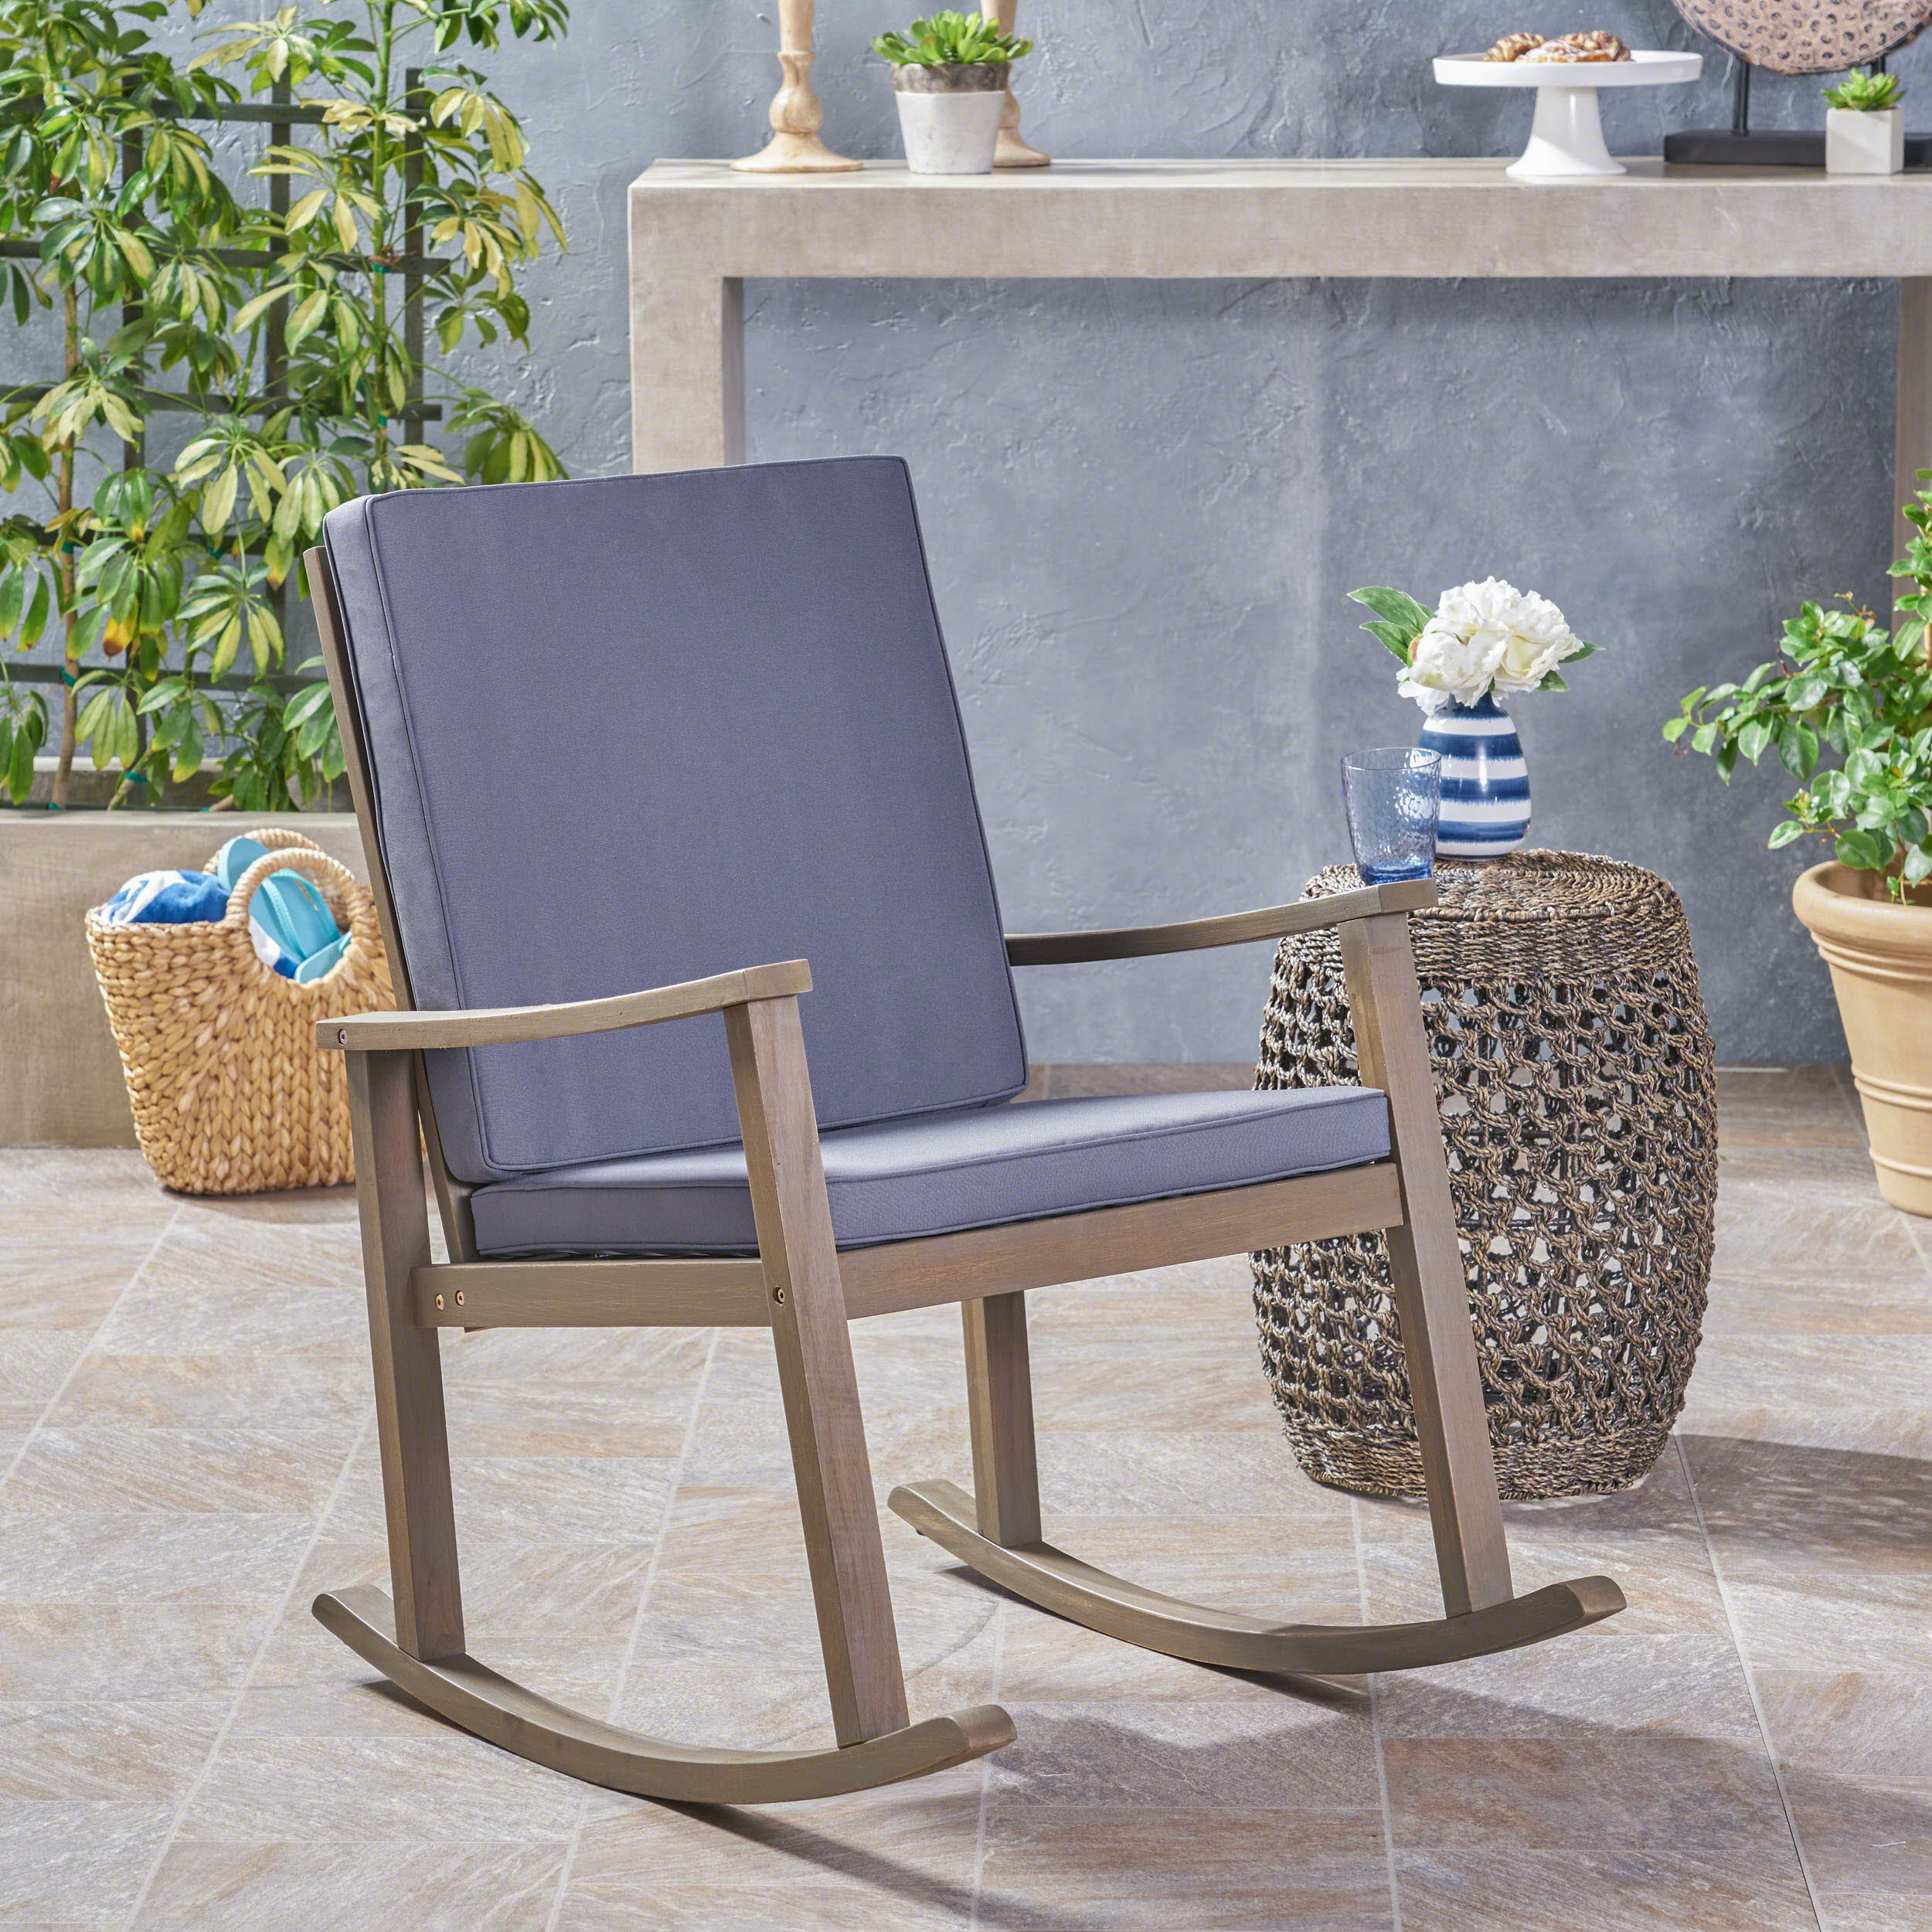 Outdoor Acacia Wood Rocking Chair with Cushion,Grey